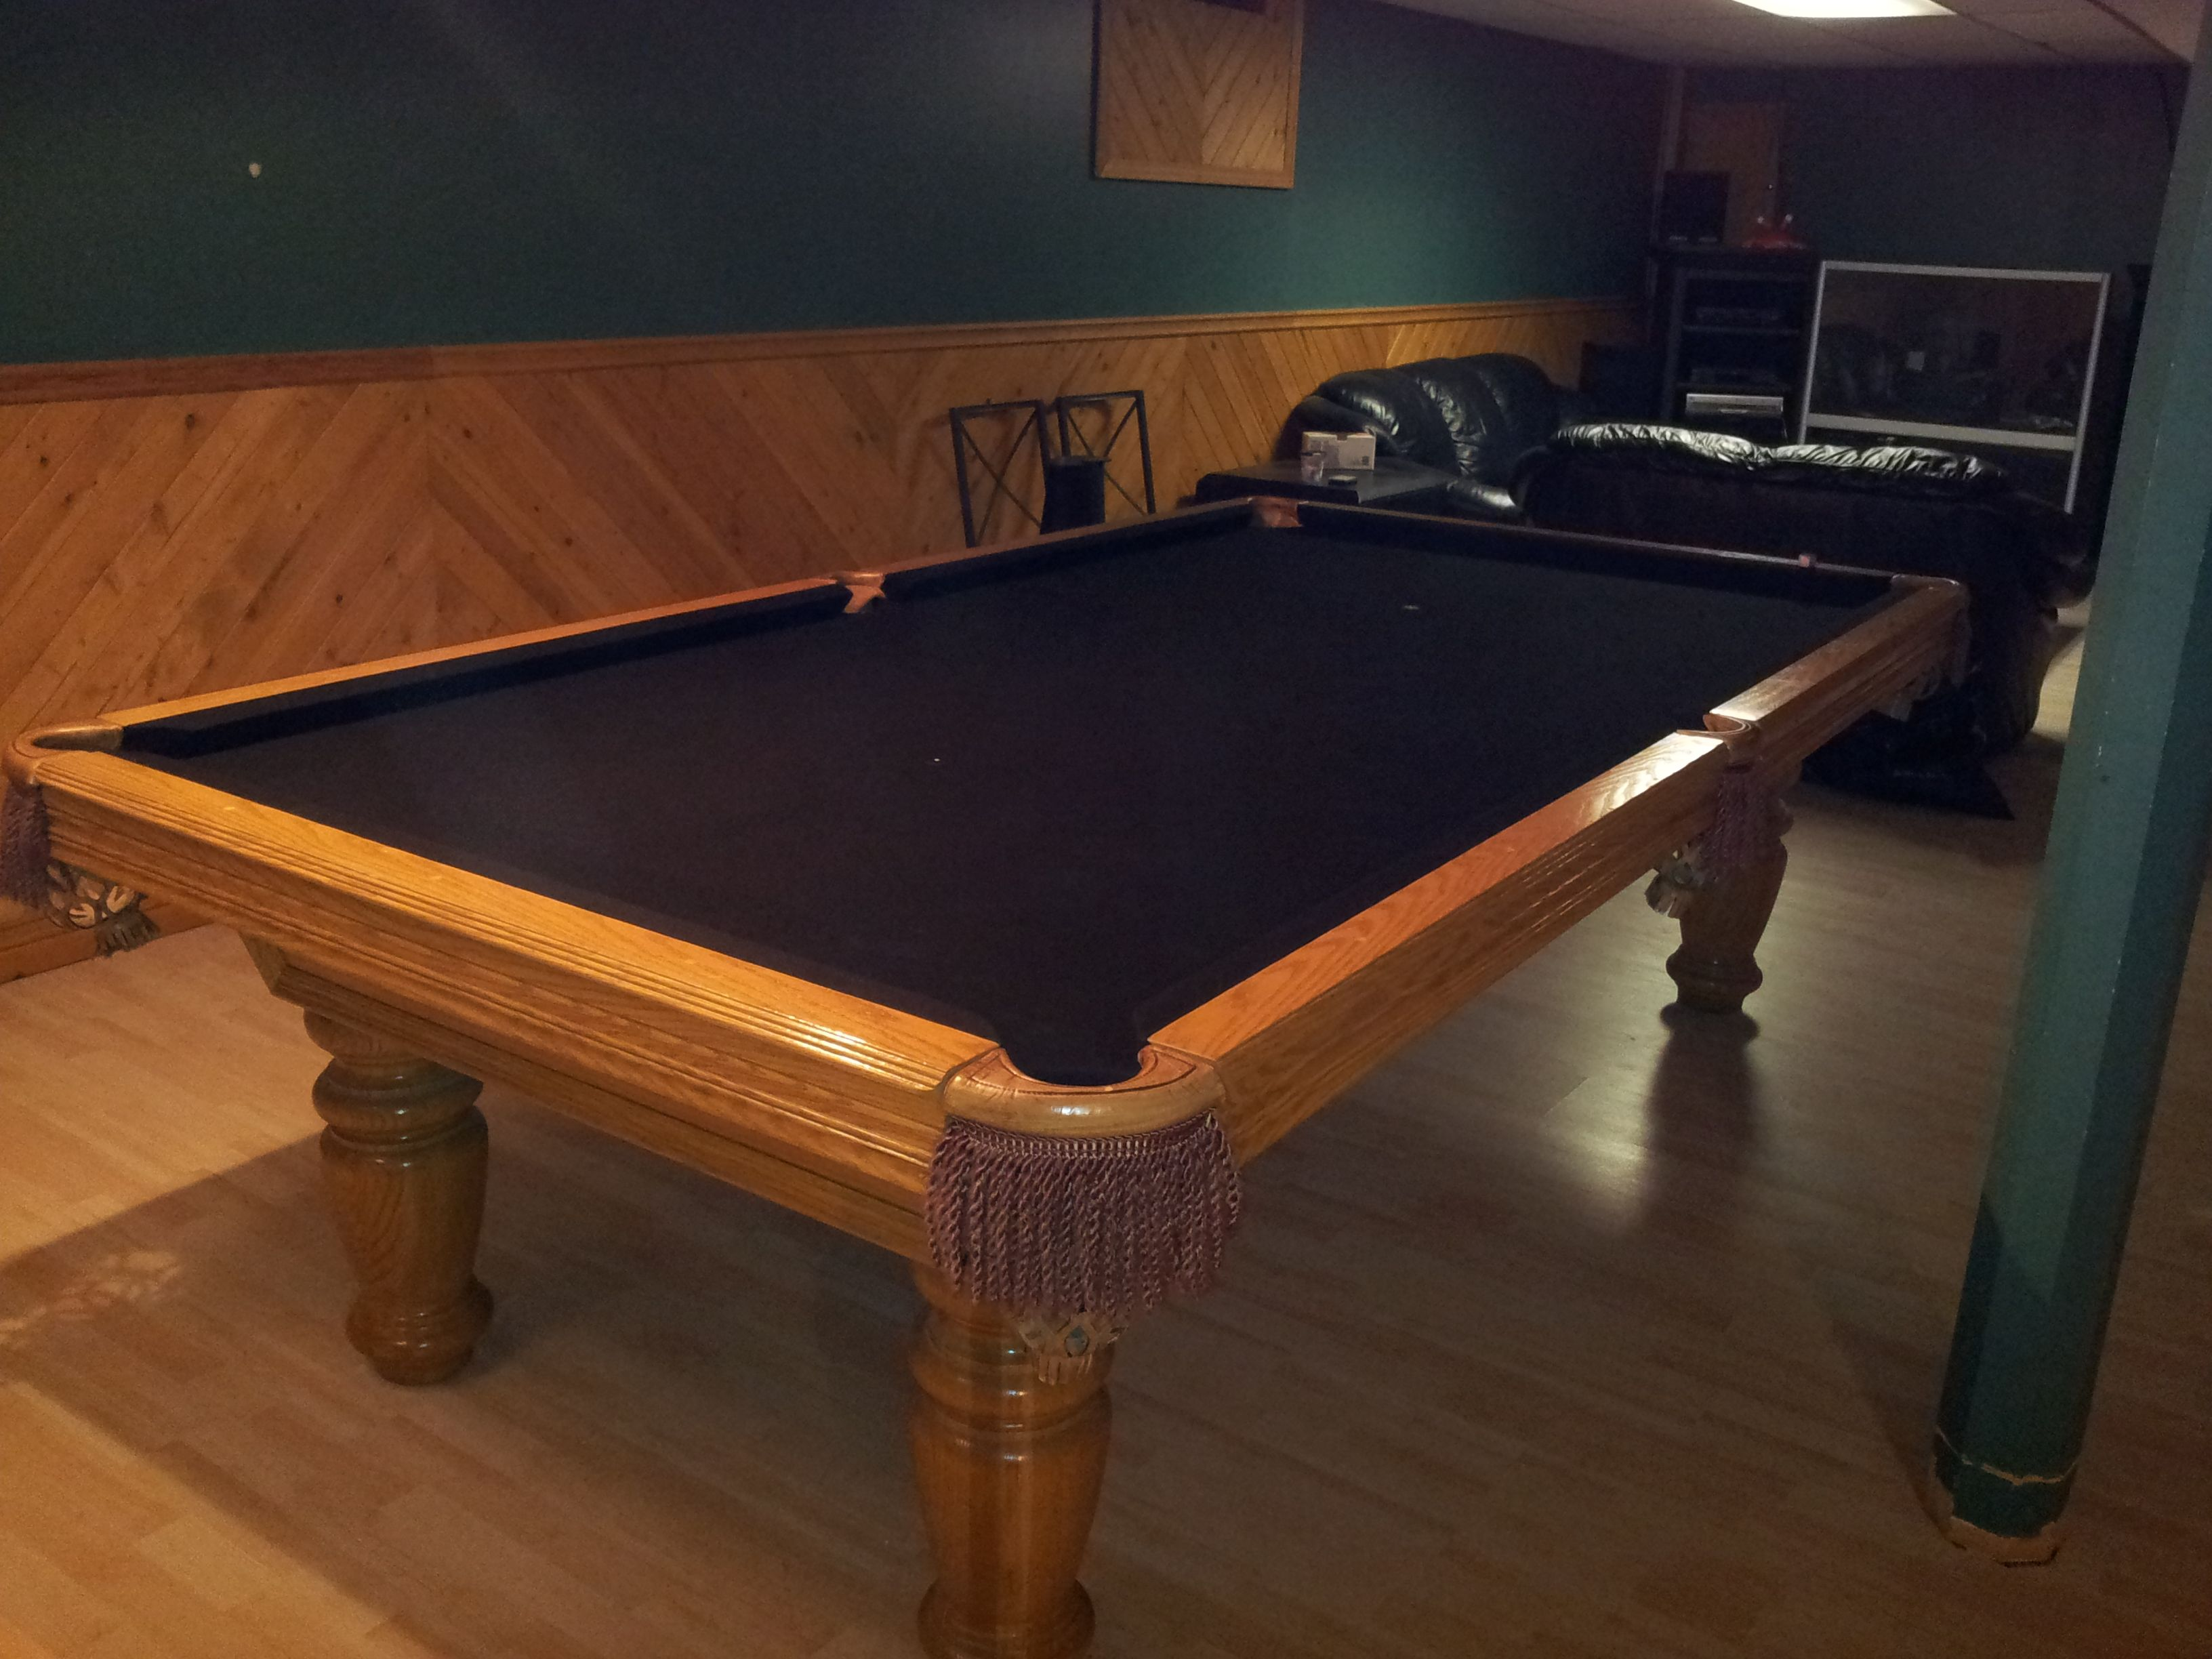 Older Oak Table In Oak Room With New Black Cloth For Pool Table Pool Table Room Pool Table Oak Table